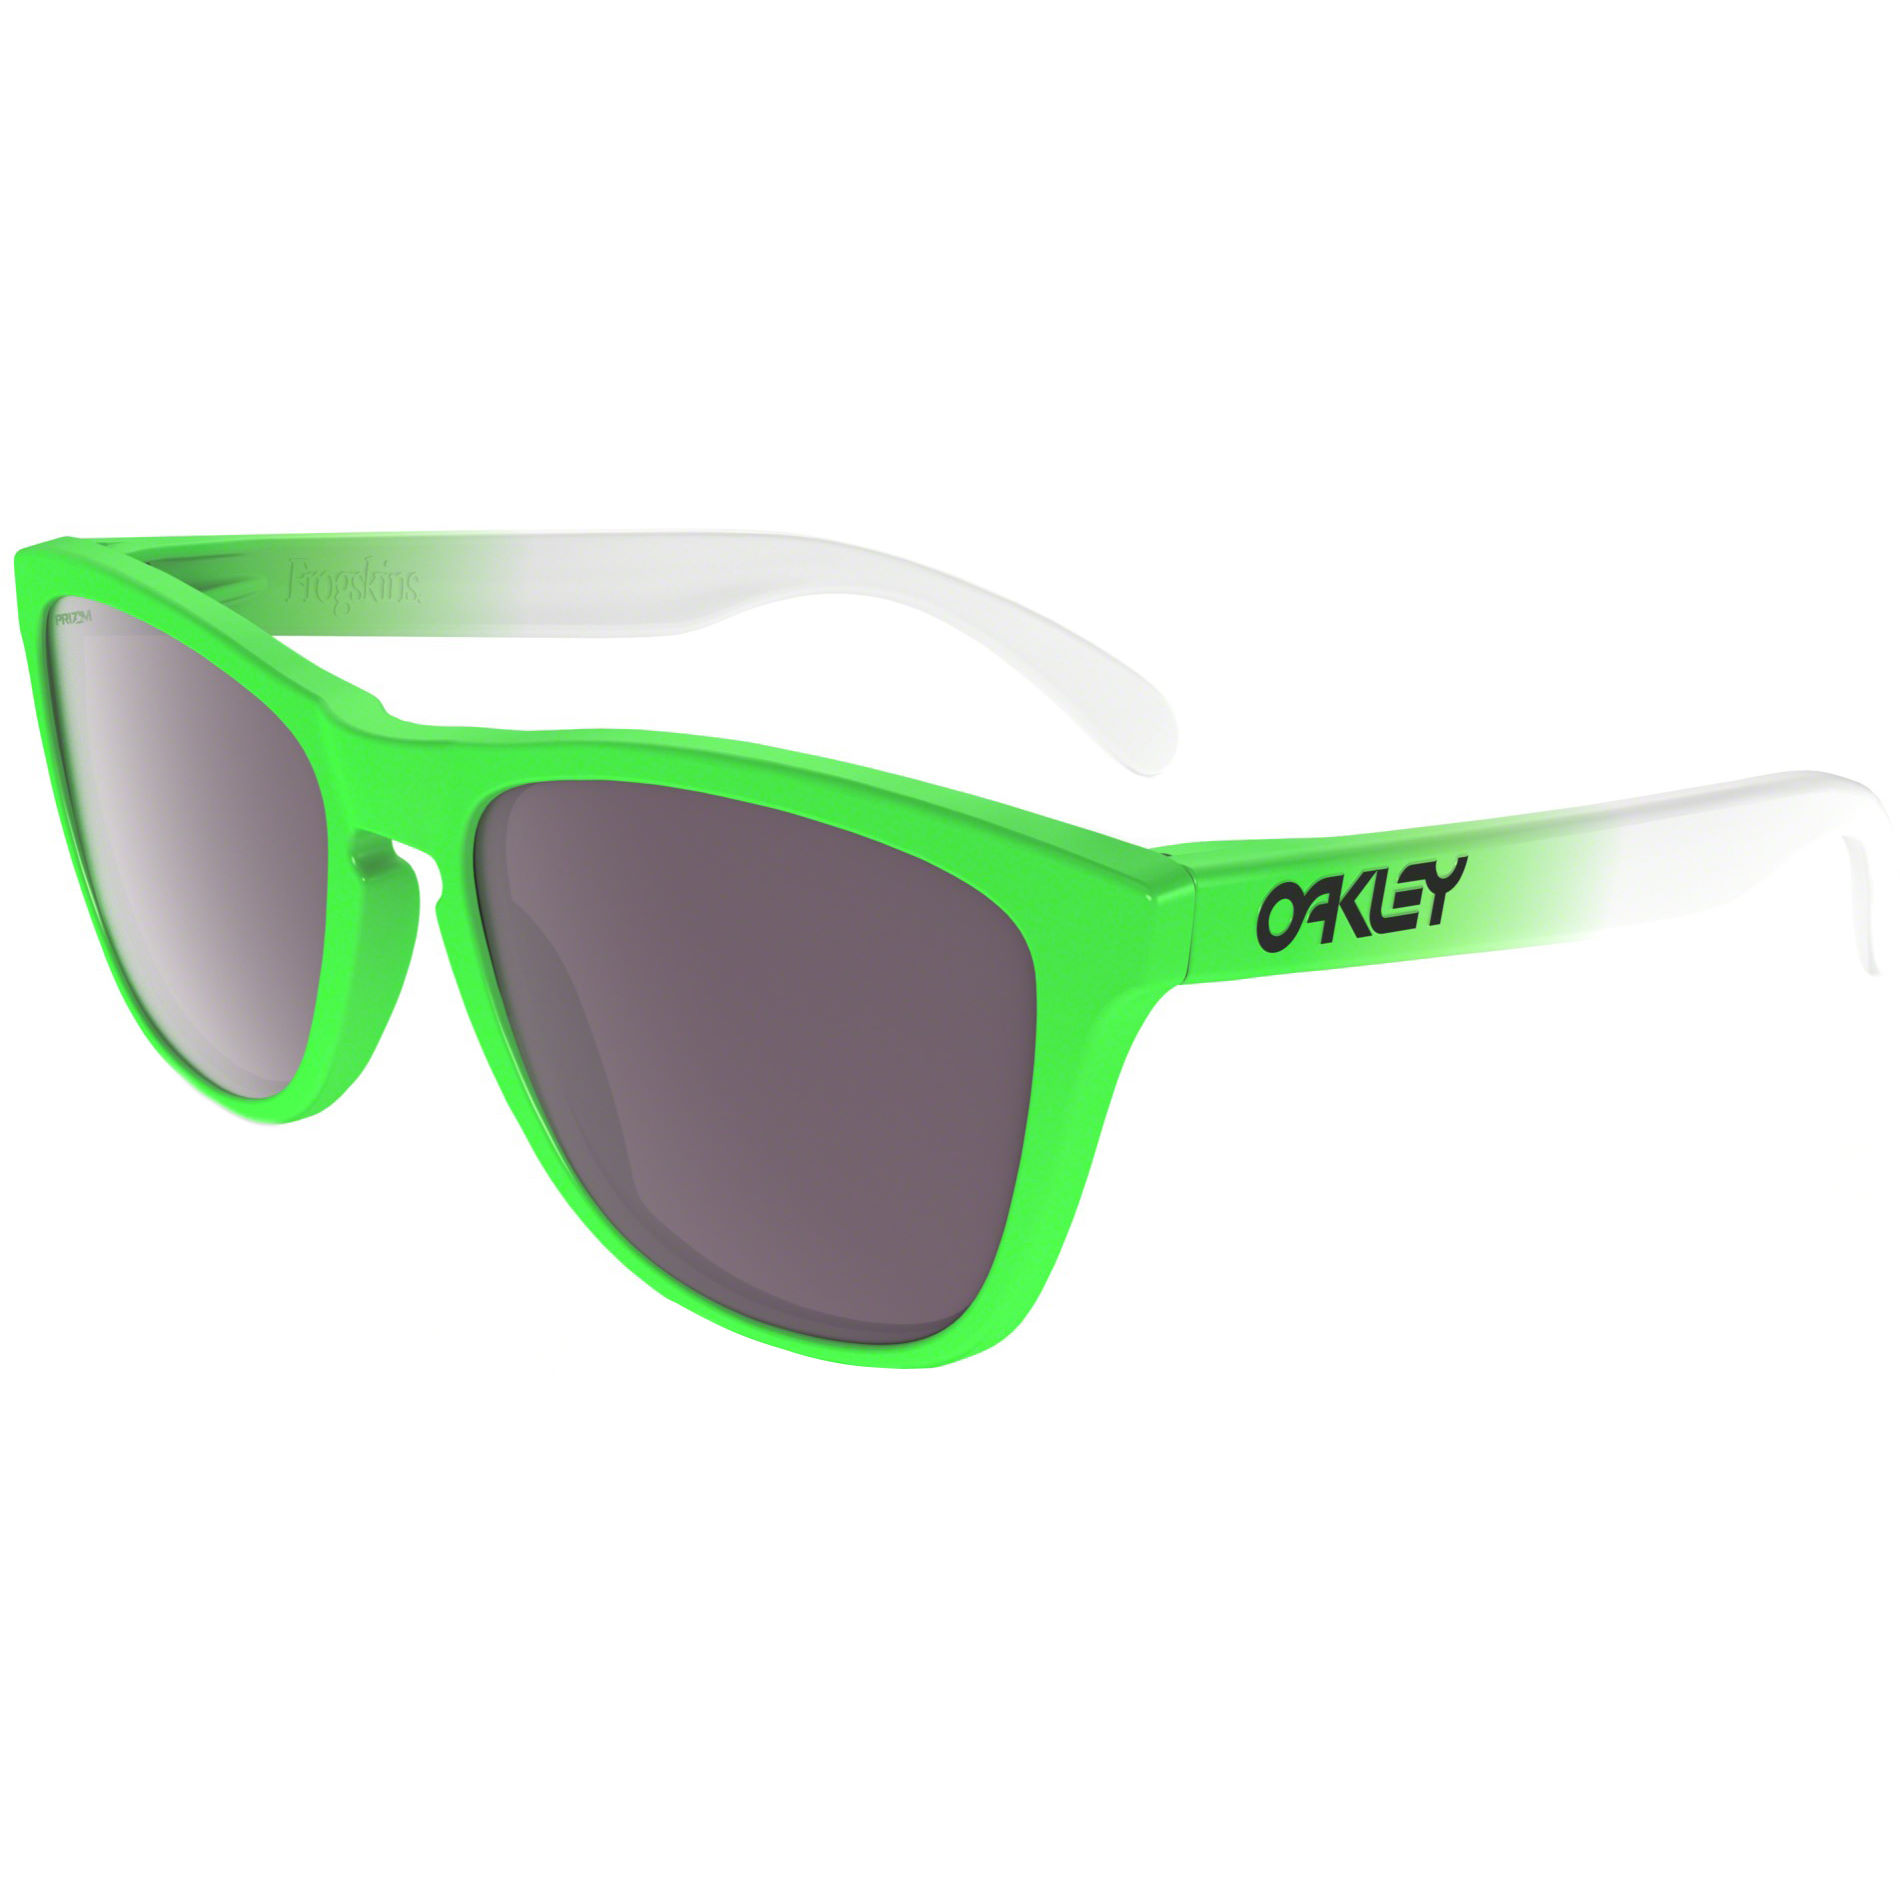 sunglasses over glasses oakley 9c1l  Oakley Frogskins Green Fade Polarised Sunglasses